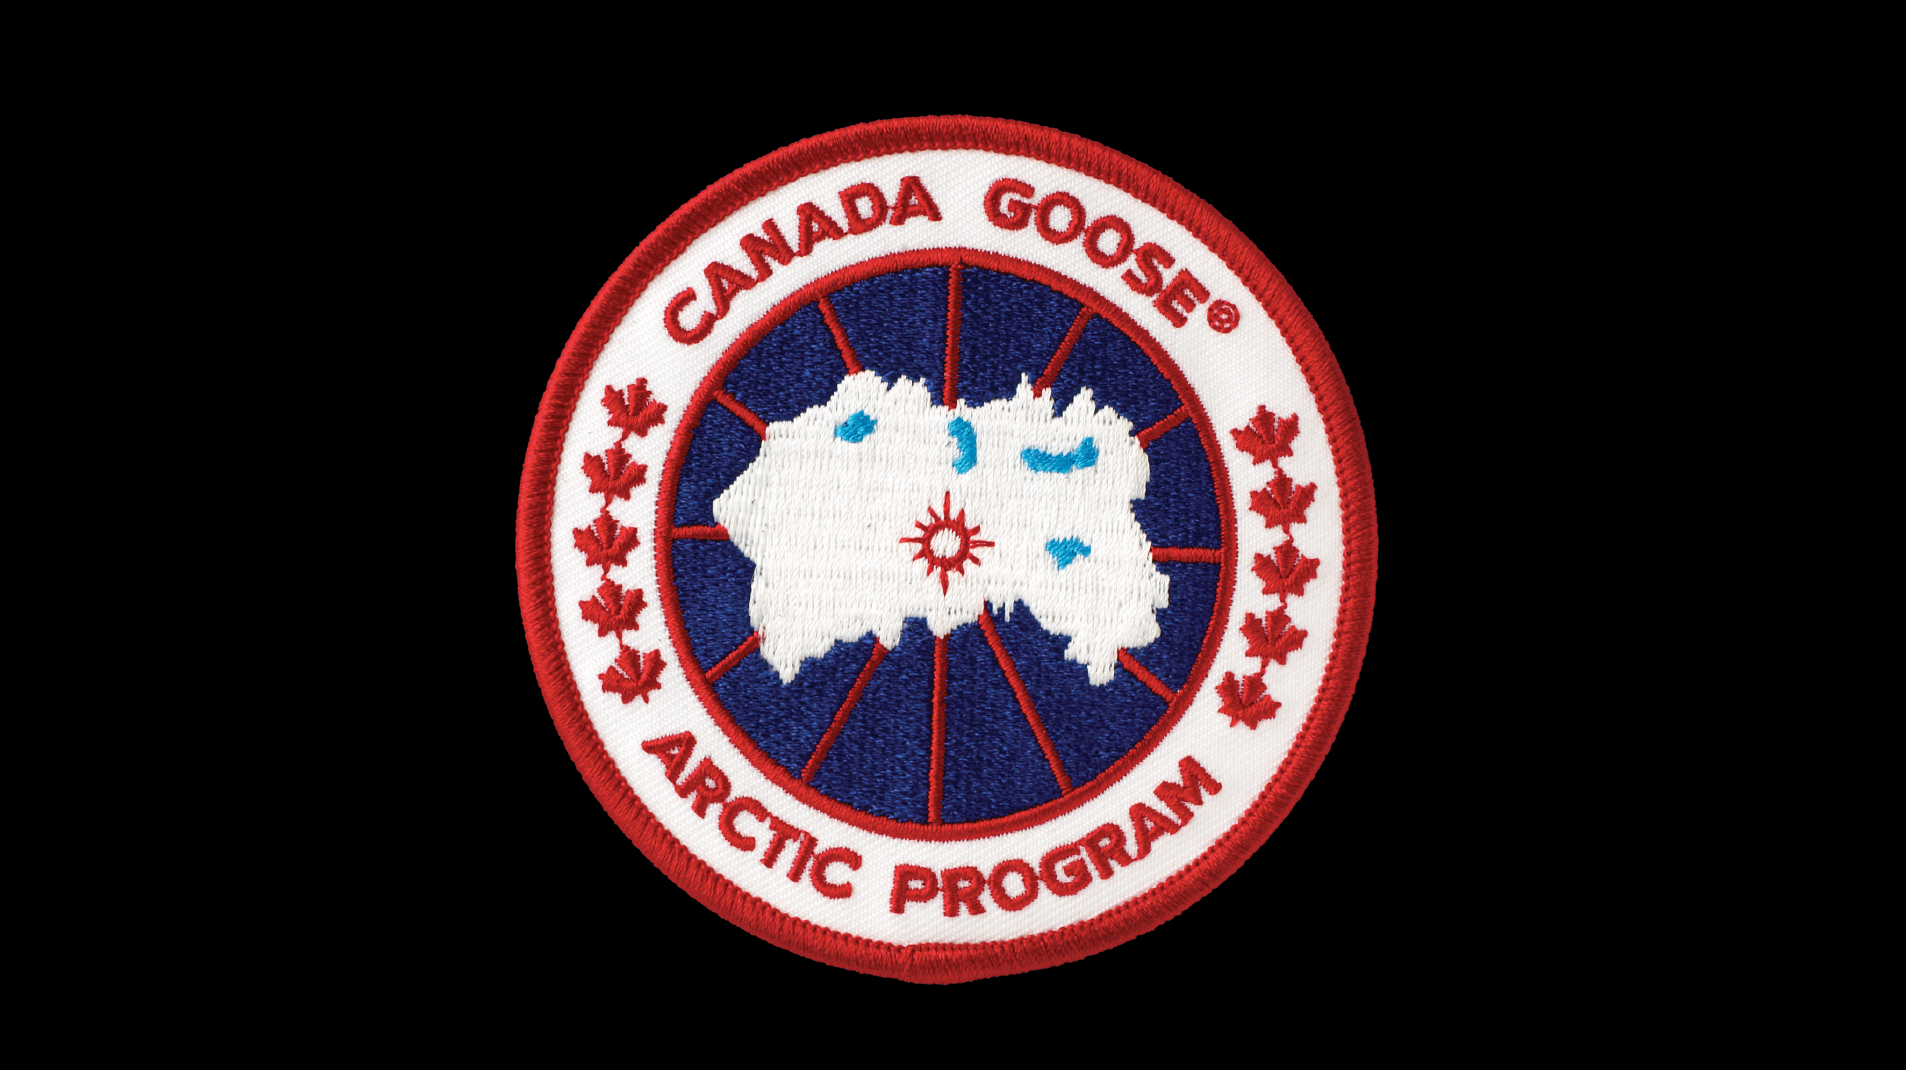 Canada goose holdings inc rings the nyse opening bell on livestream biocorpaavc Gallery